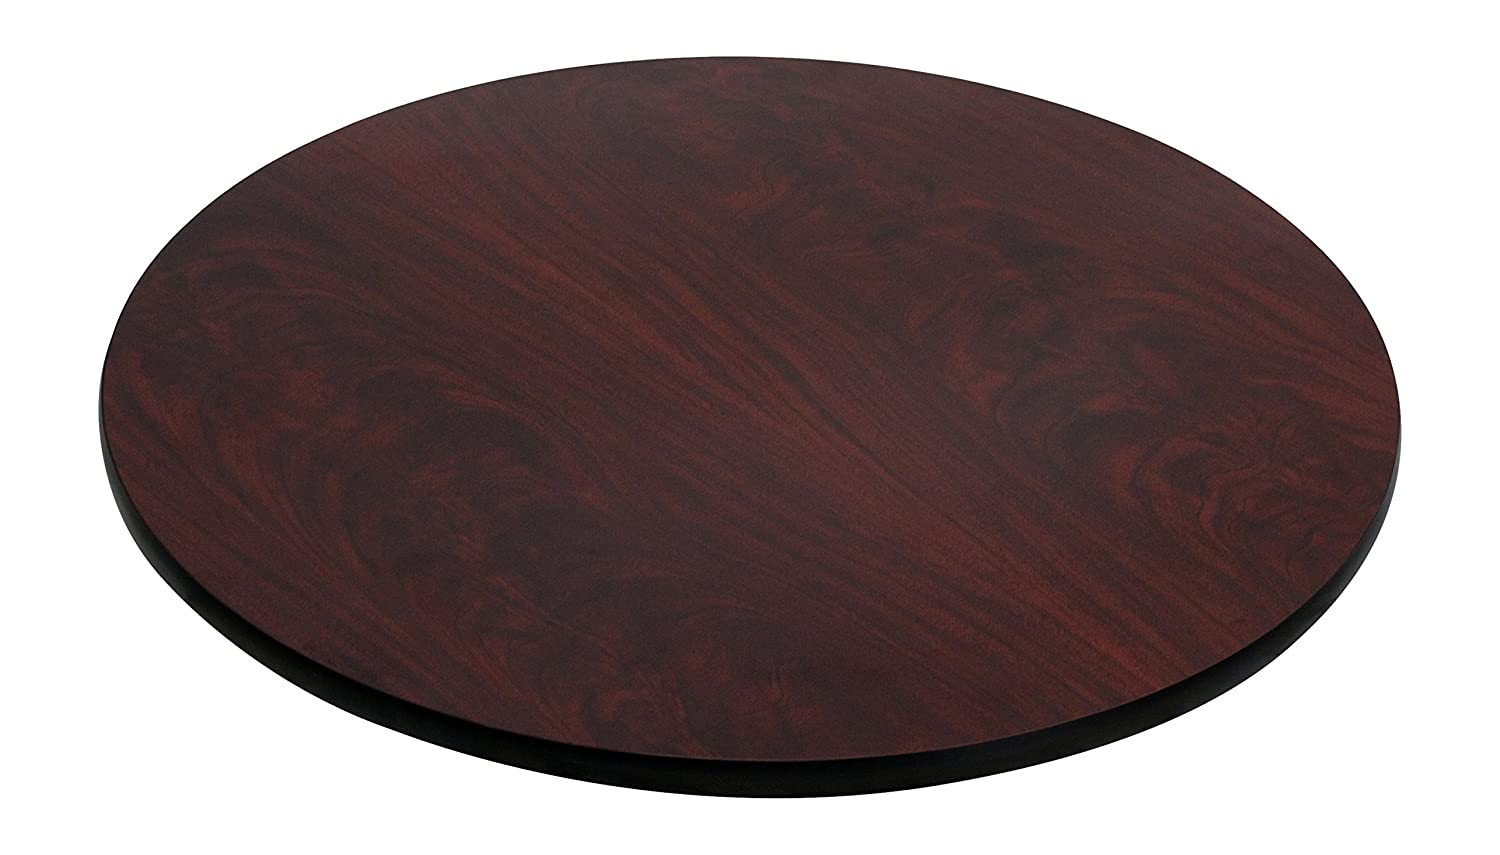 Flash Furniture 42-Inch Round Table Top with Black or Mahogany Reversible Laminate Top XU-RD-42-MBT-GG